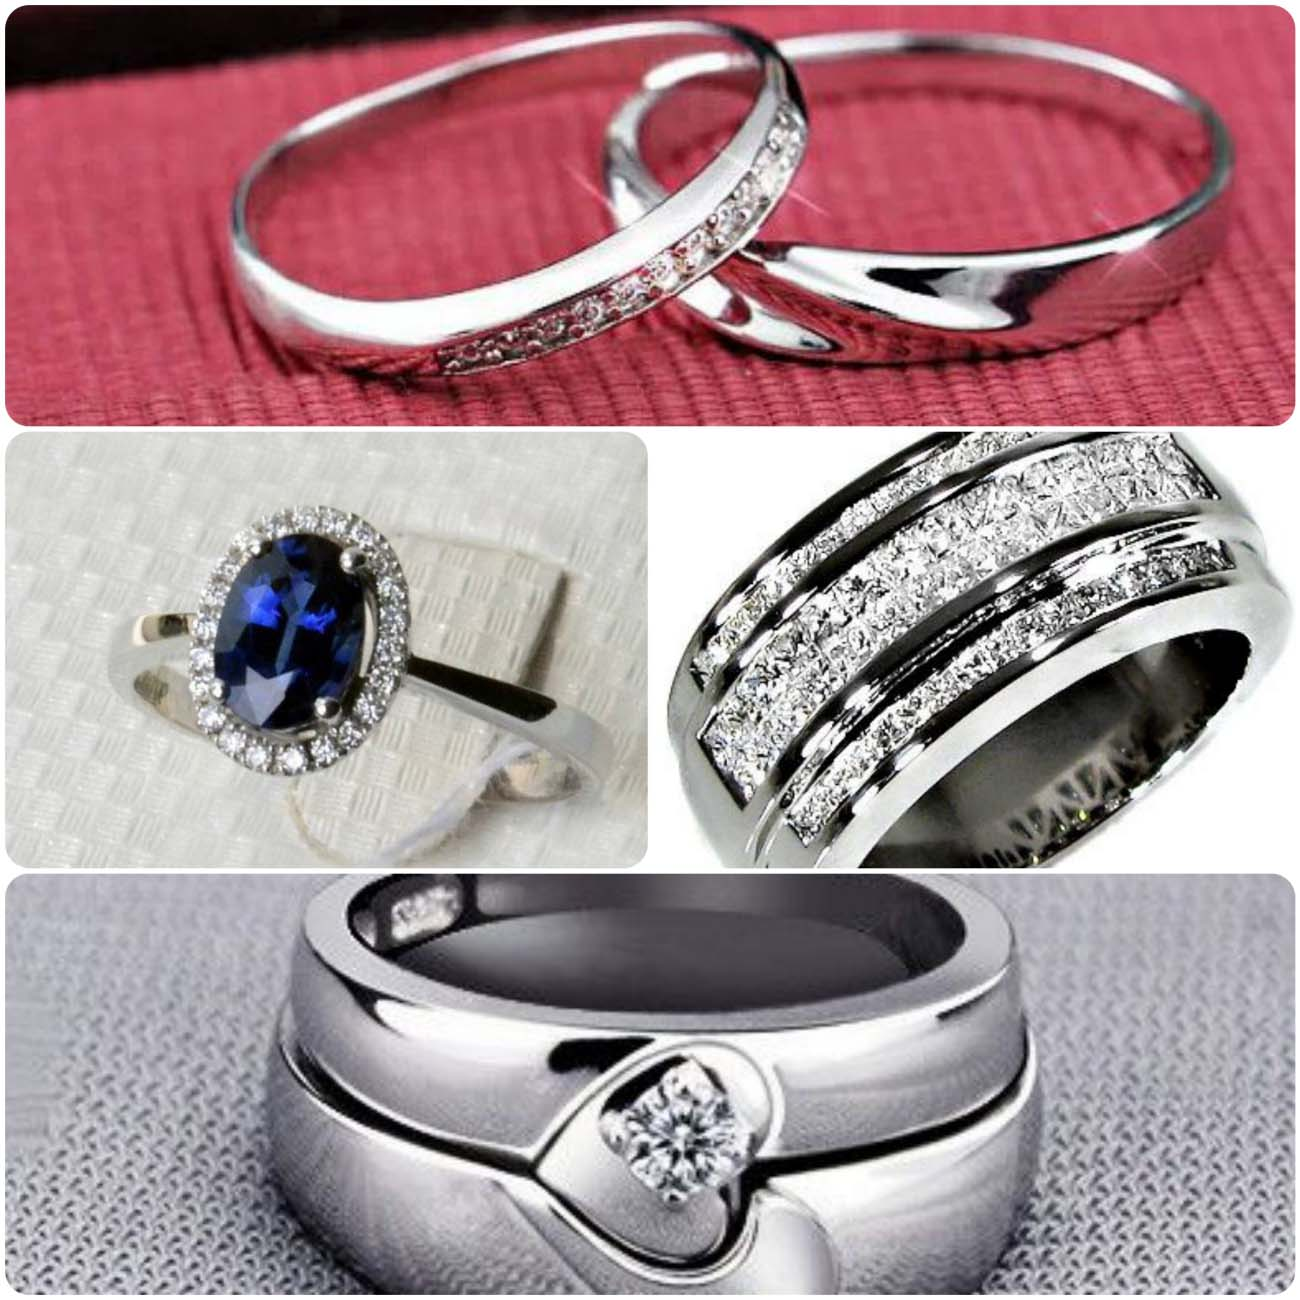 Latest Engagement Rings Designs Amp Styles For Men And Women